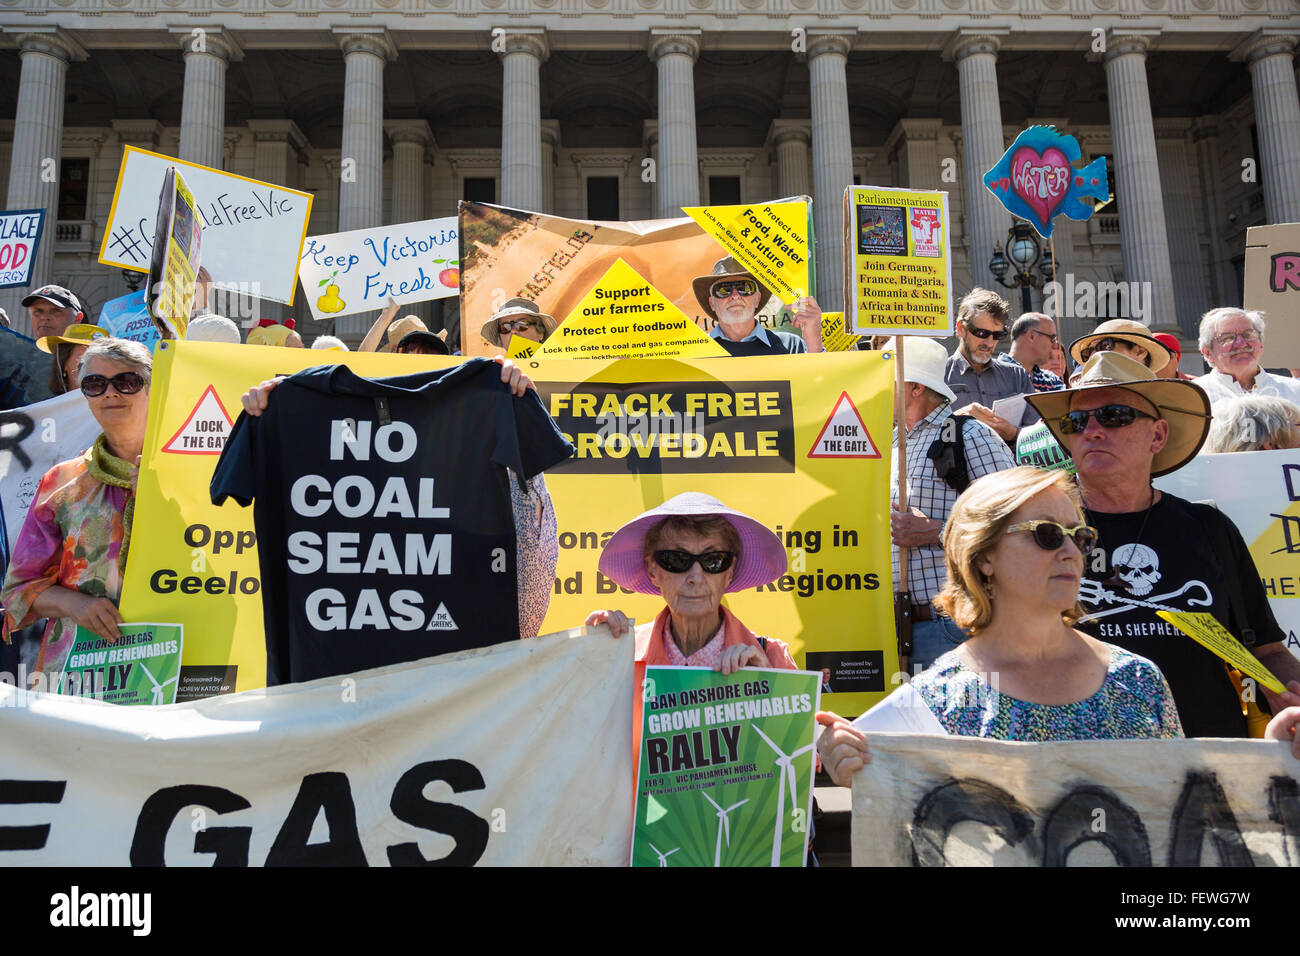 Melbourne, Australia. 9th February, 2016. Anti CSG protesters gather outside Parliament house in Melbourne to rally Stock Photo